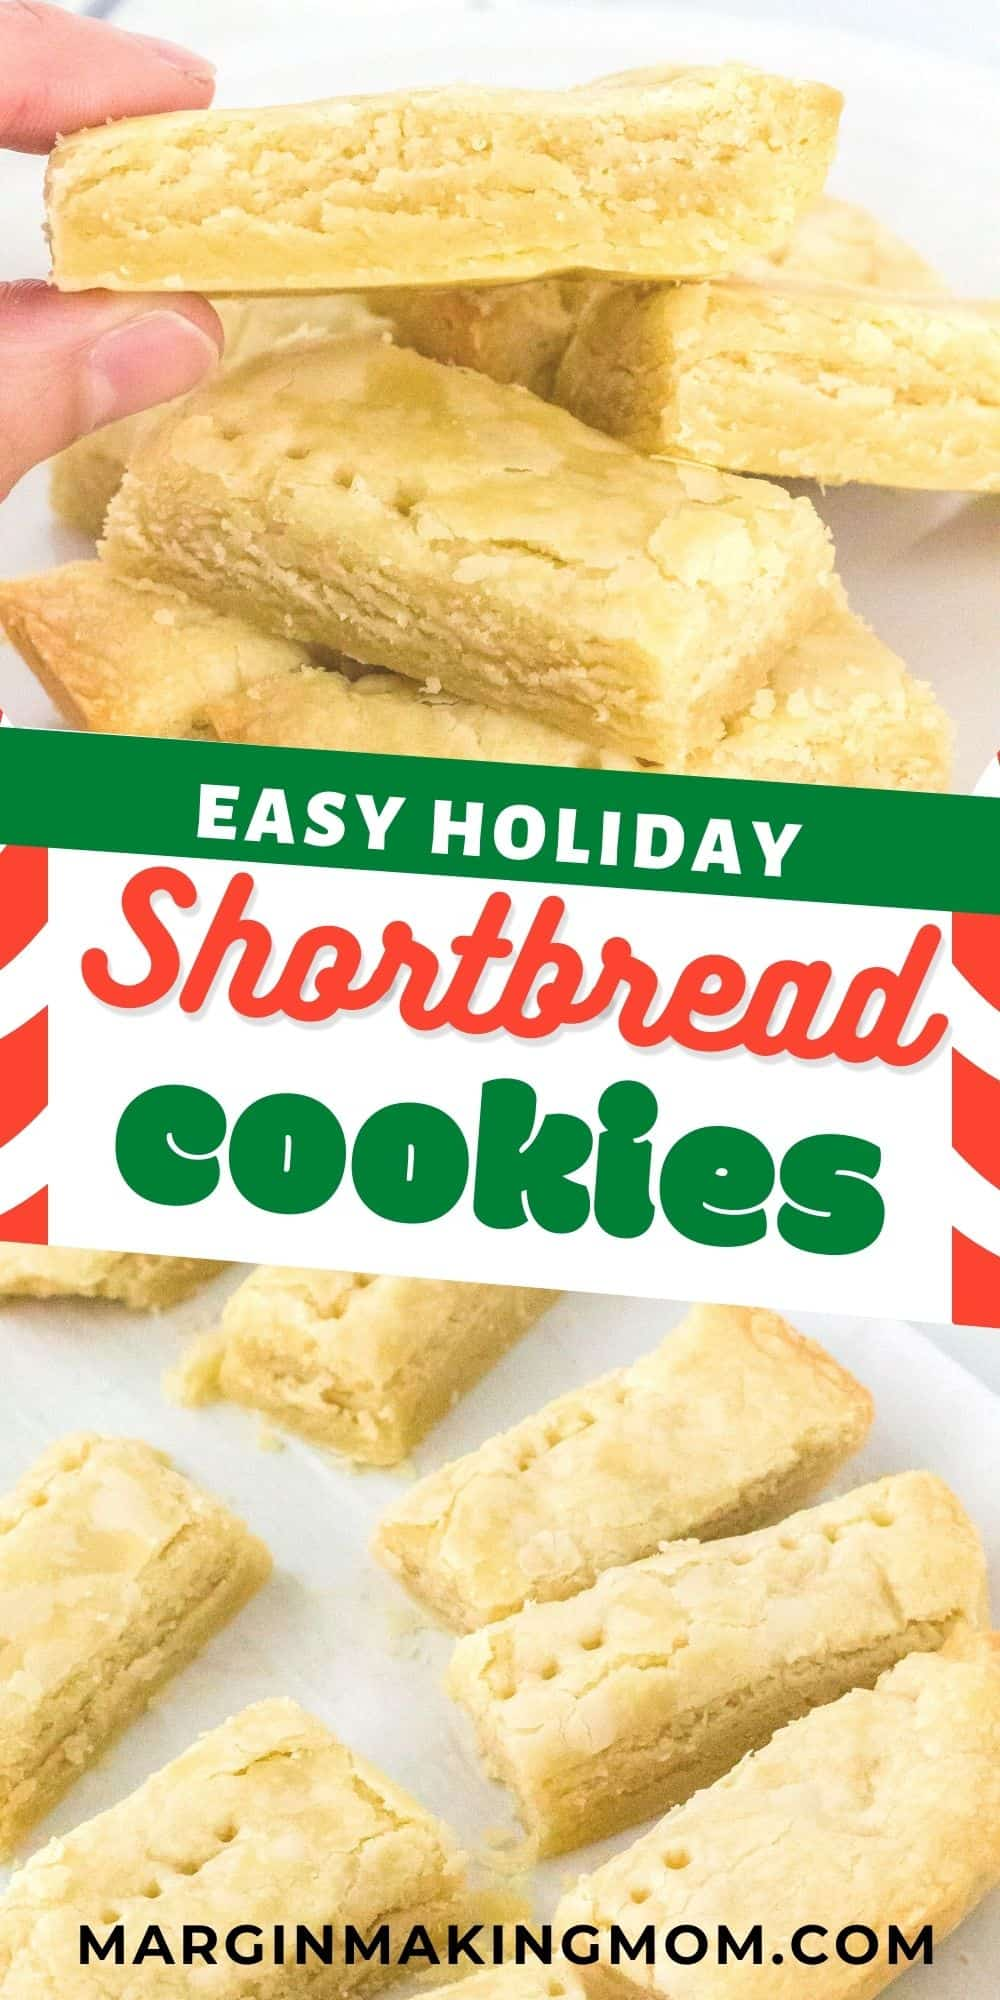 collage image featuring two photos of Scottish shortbread cookies--one is a cookie held by a hand, the other is cookies on parchment paper